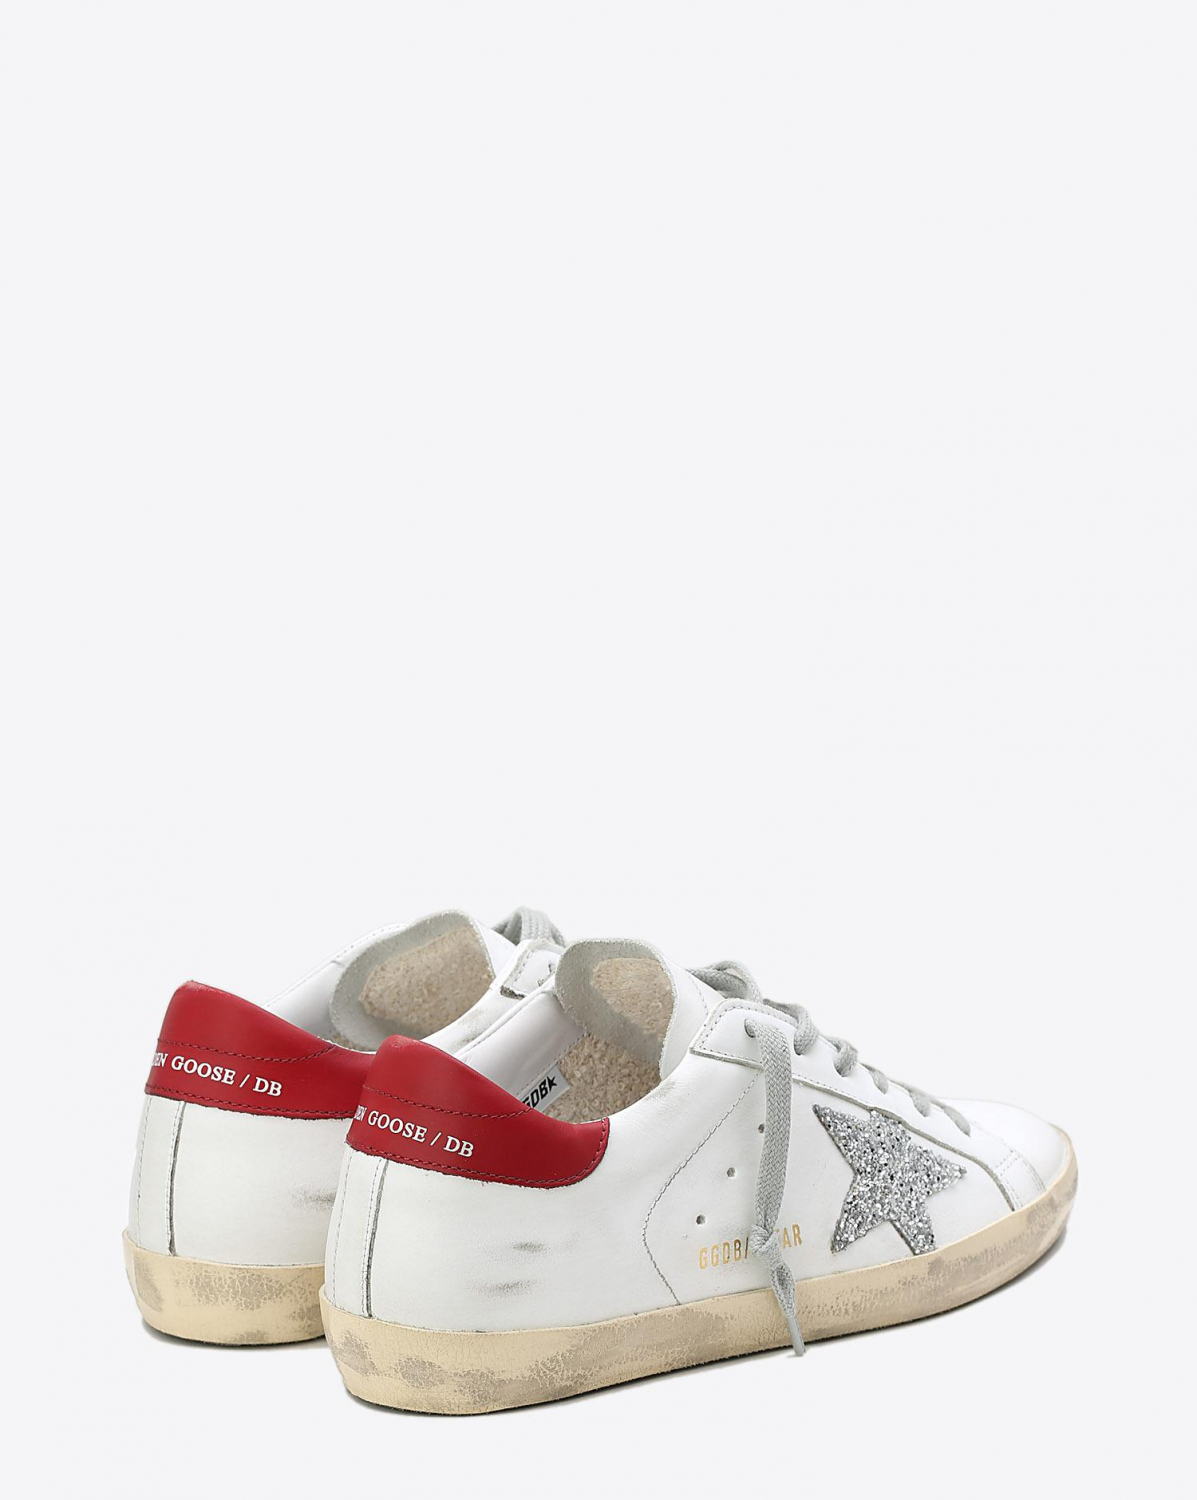 Golden Goose Woman Pré-Collection Sneakers Superstar WhiteRed - Silver Glitter